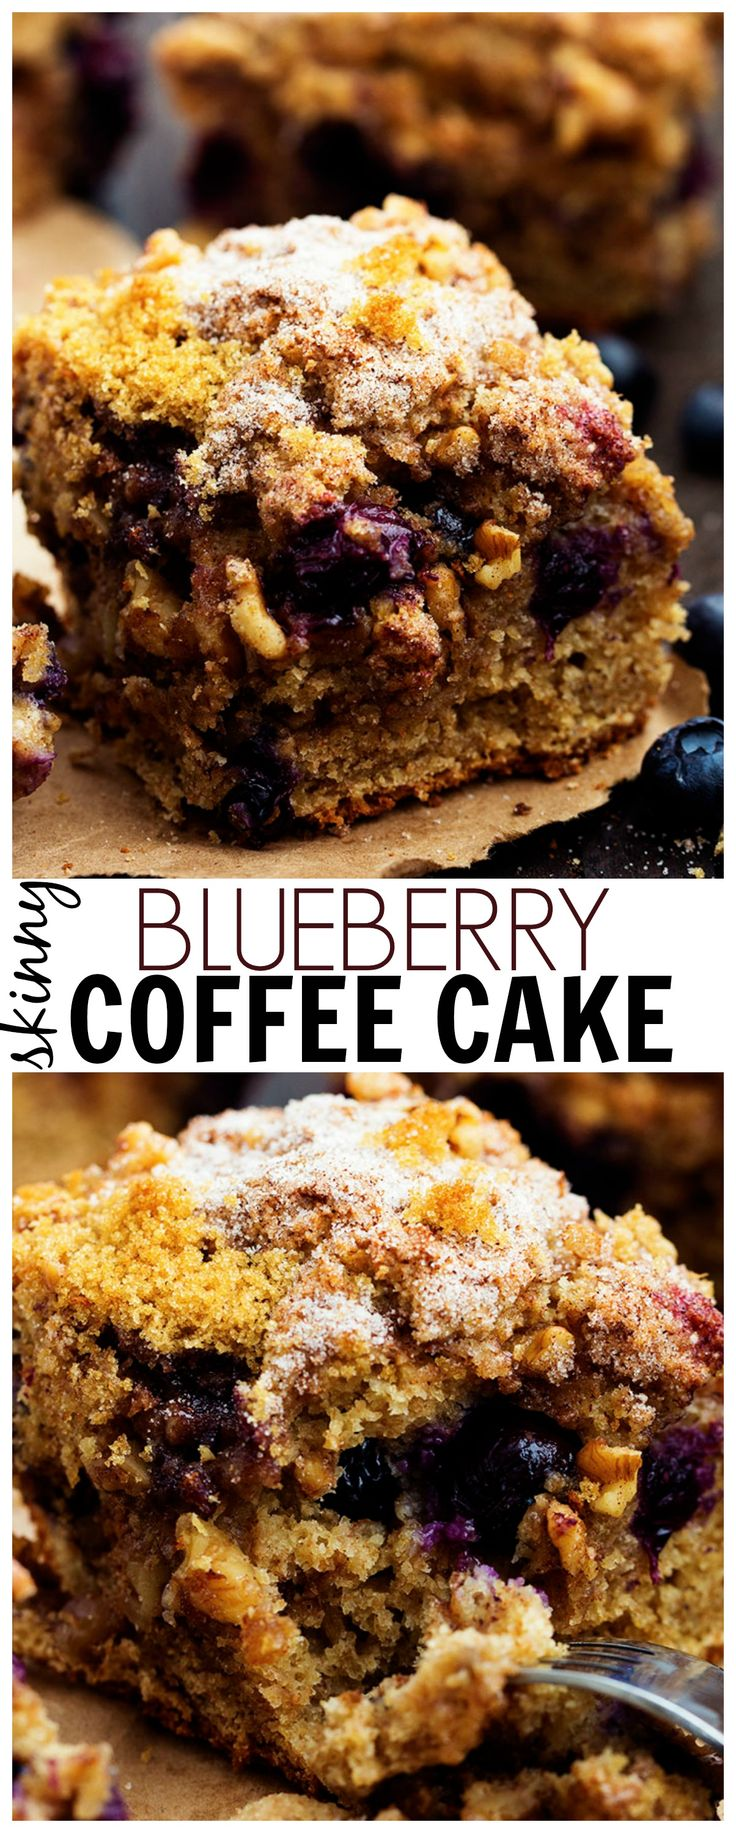 This Blueberry Coffee Cake is perfectly moist and crumbly and bursting with fresh blueberries!